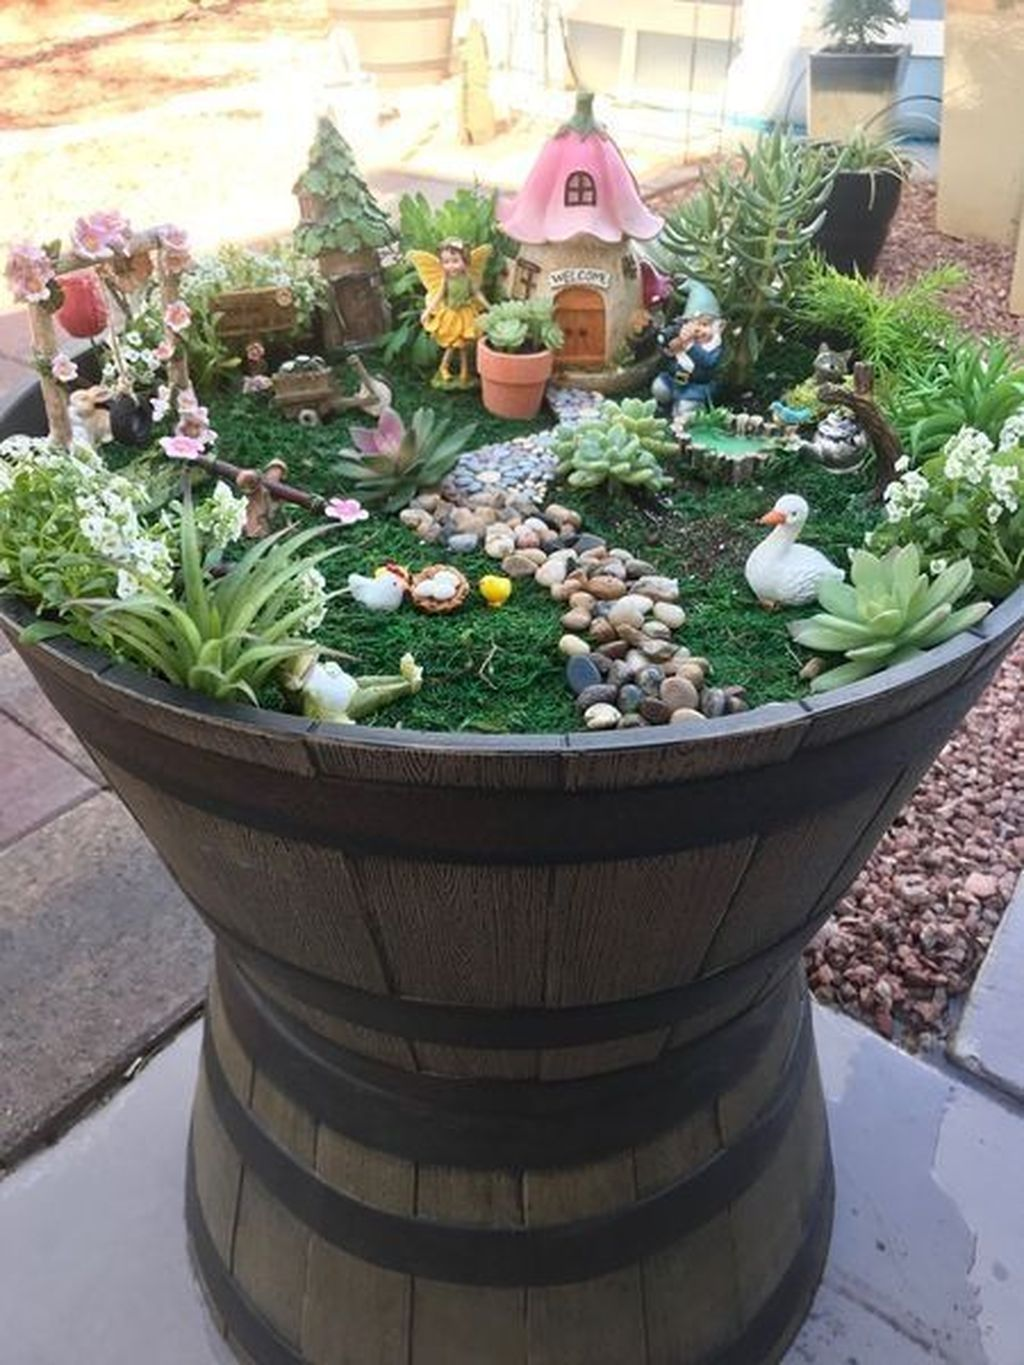 35 Stylish Fairy Gardens Design Ideas To Your Real Life To Try Asap 35 Stylish F Fairy Garden Pots Fairy Garden Containers Fairy Garden Designs